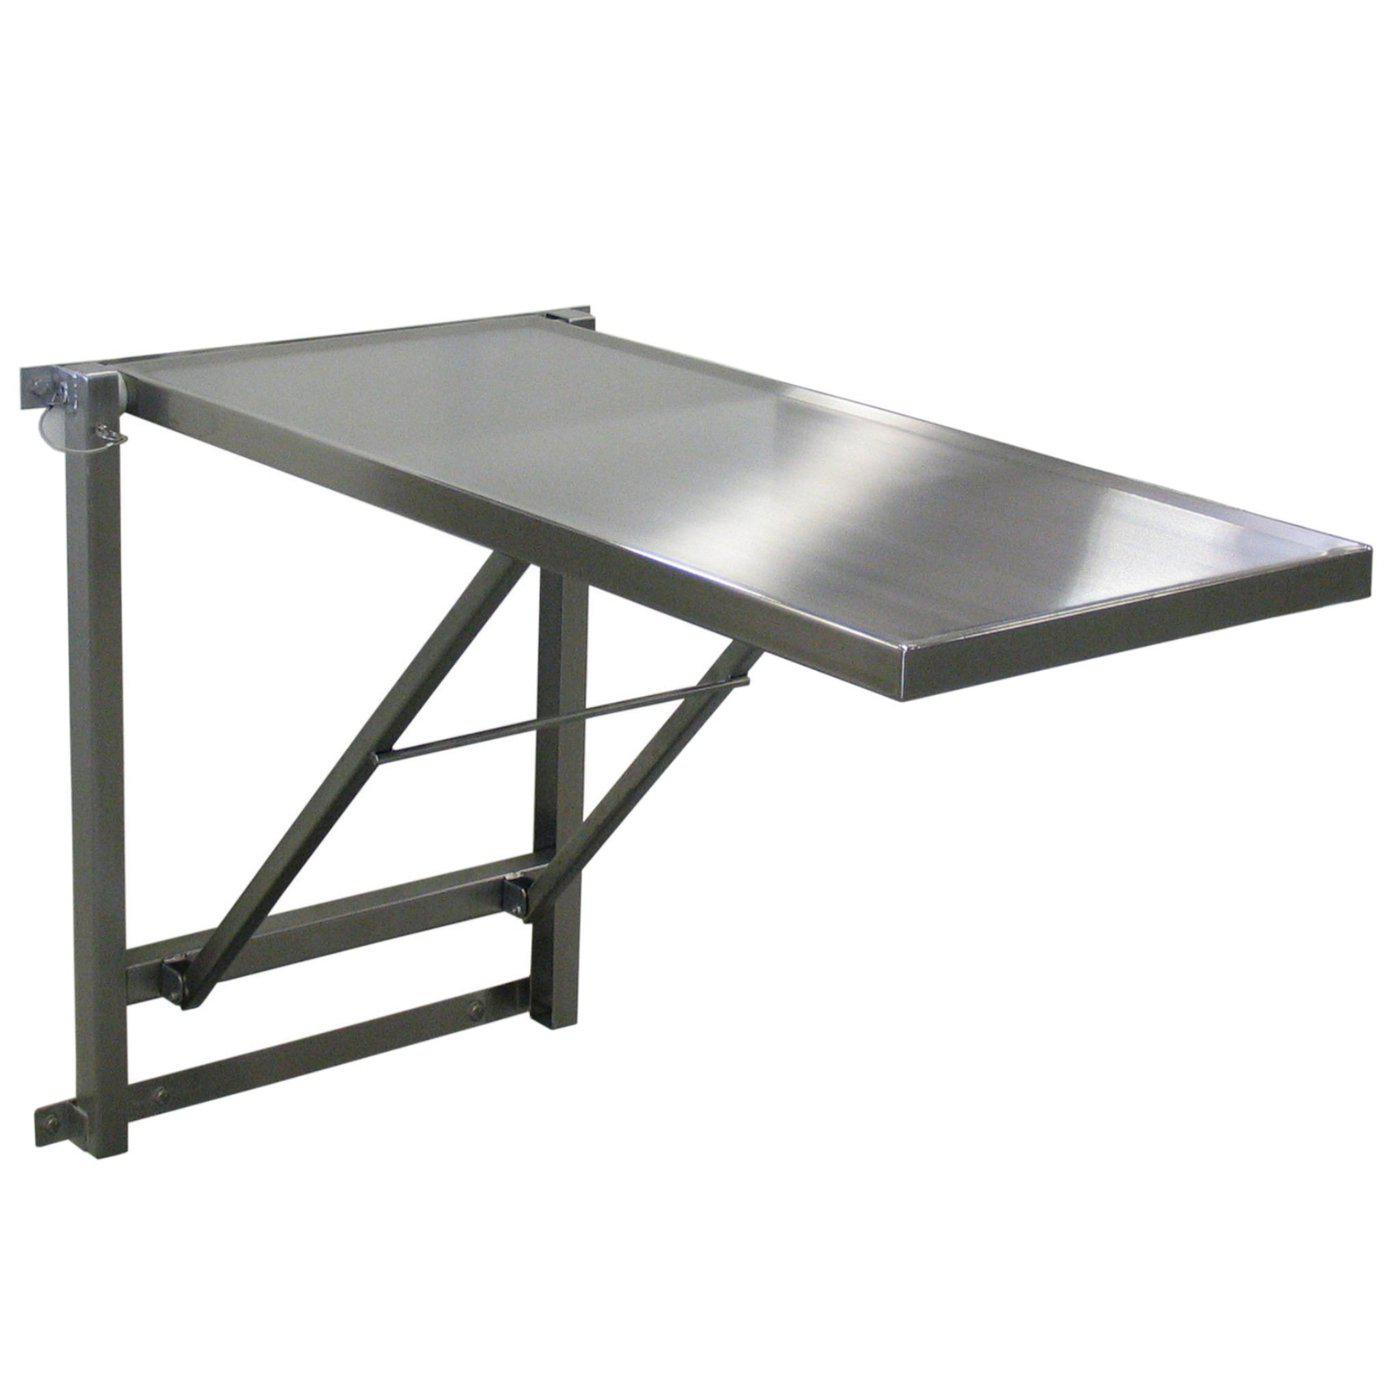 Folding Exam Table-Necropsy Dissection Tables-Mortech Manufacturing Company Inc. Quality Stainless Steel Autopsy, Morgue, Funeral Home, Necropsy, Veterinary / Anatomy, Dissection Equipment and Accessories